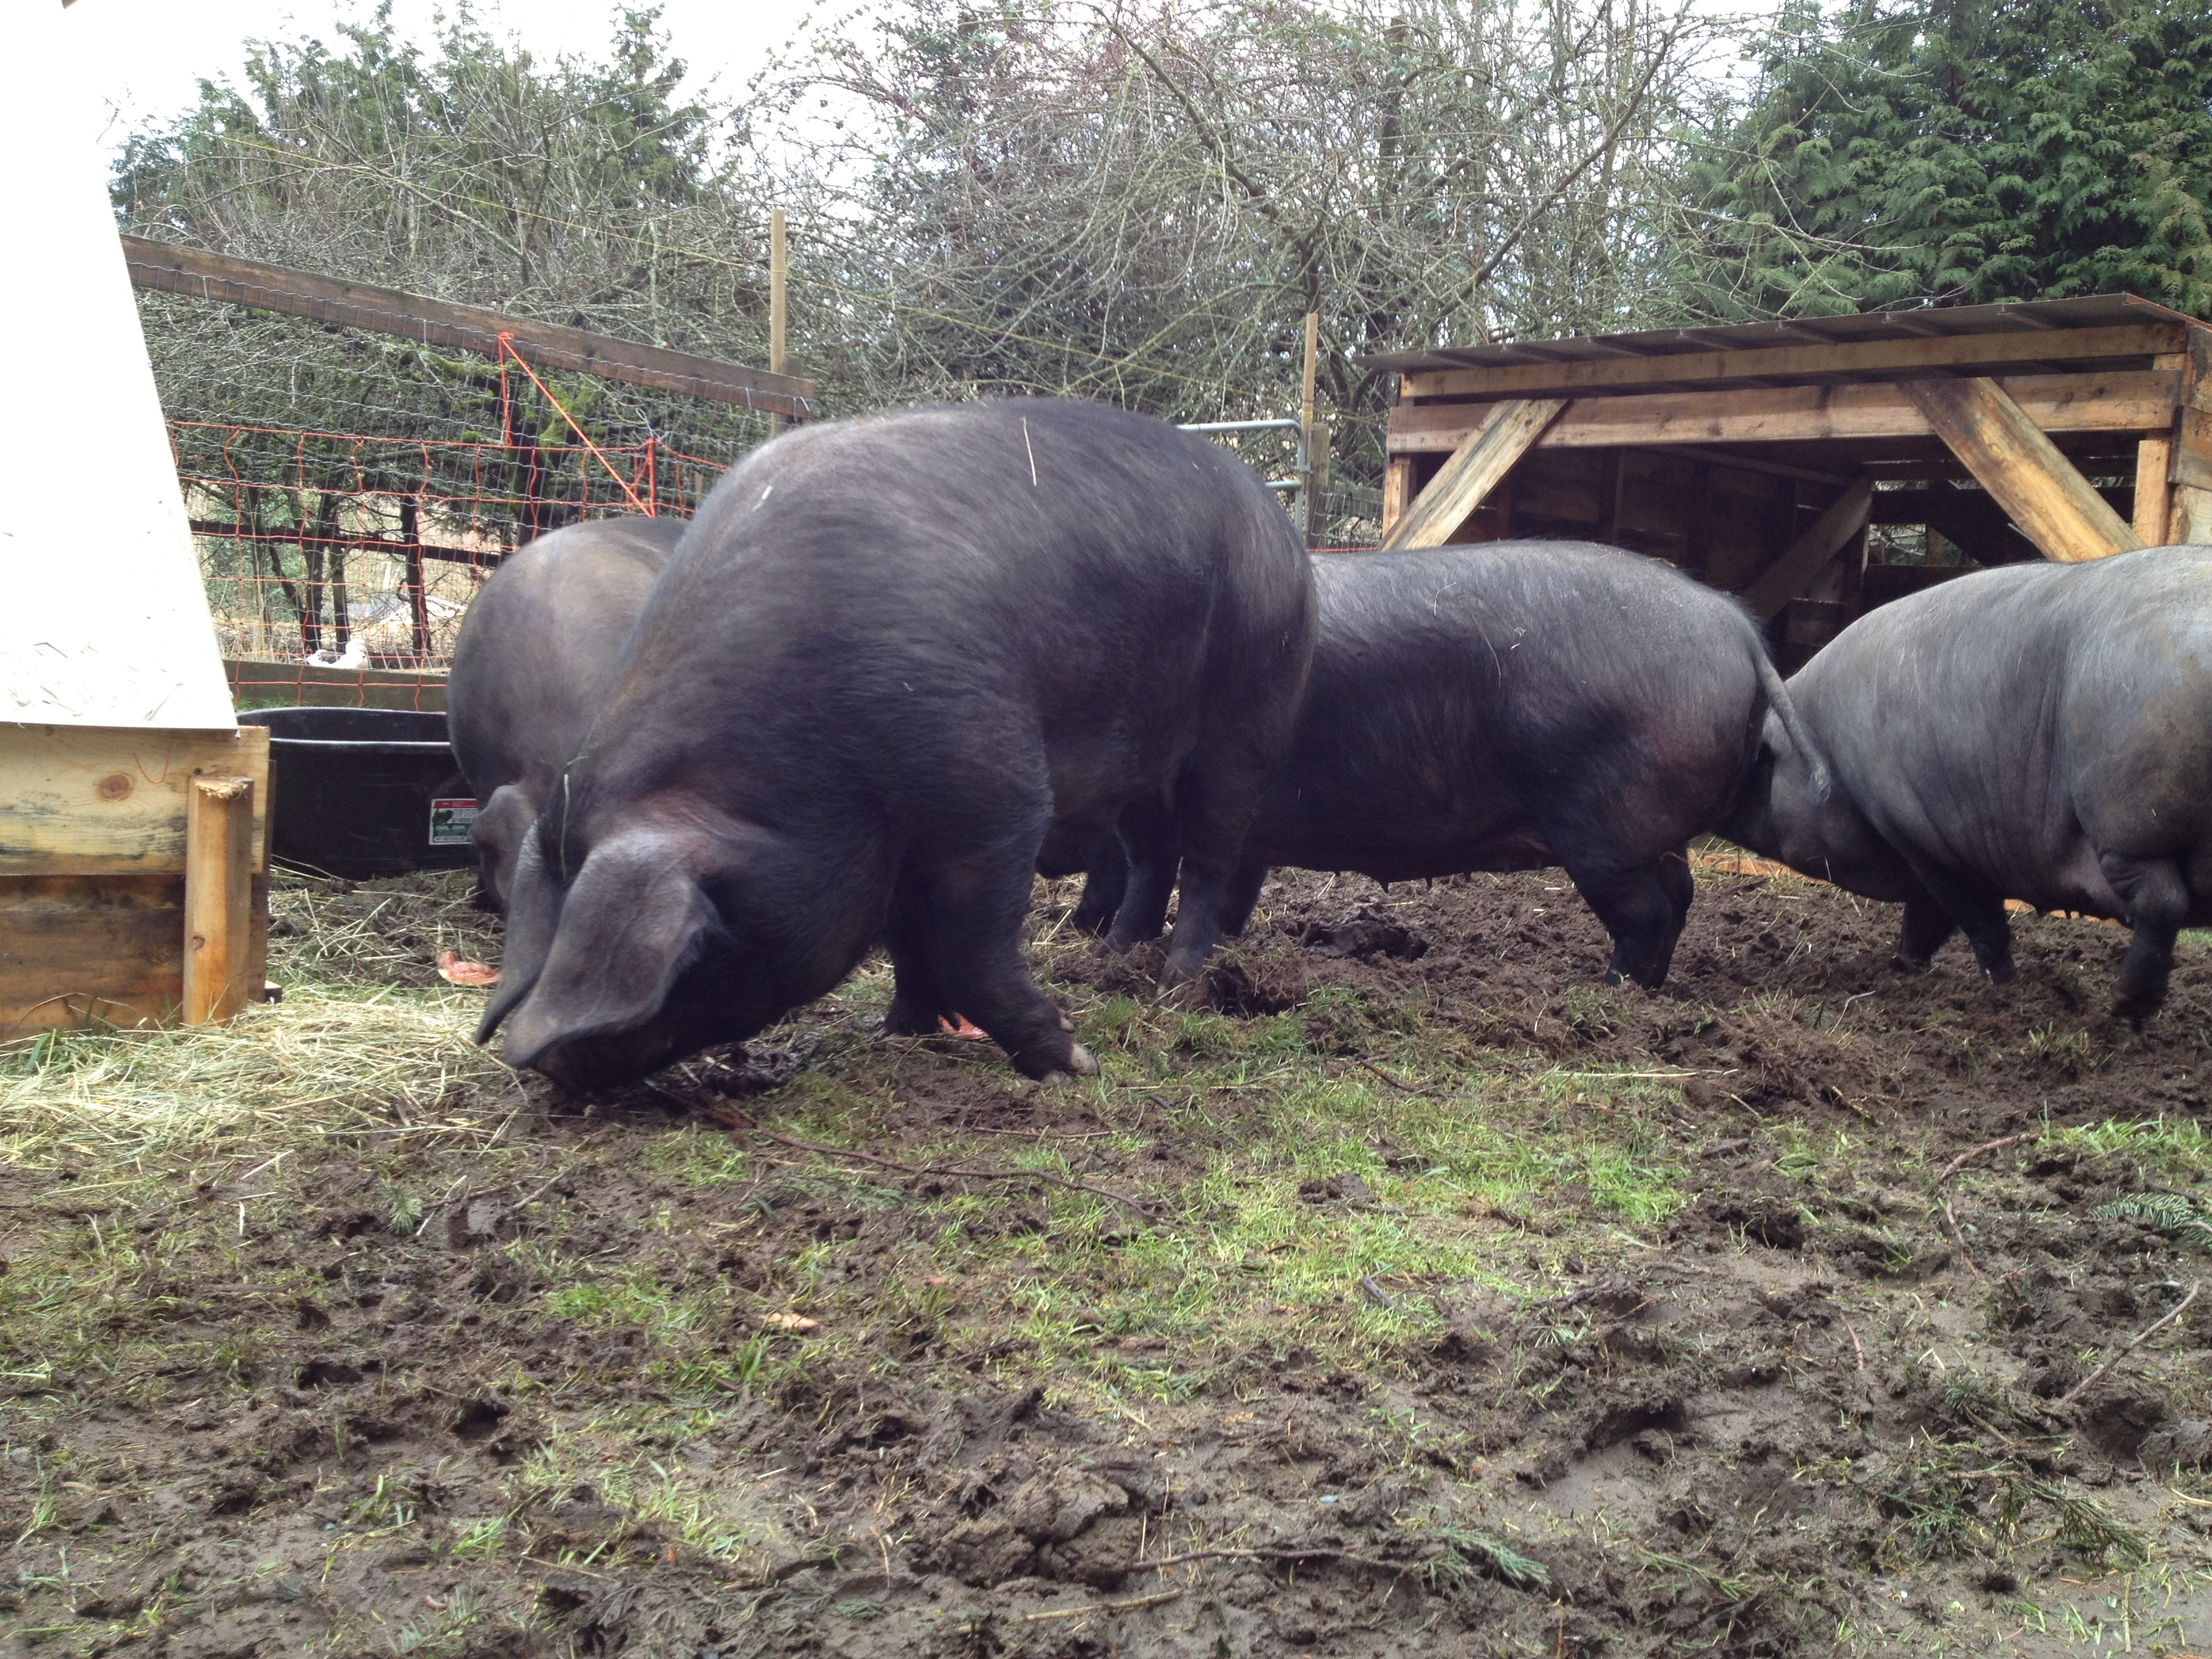 Large Black Hogs at Dark Creek Farm